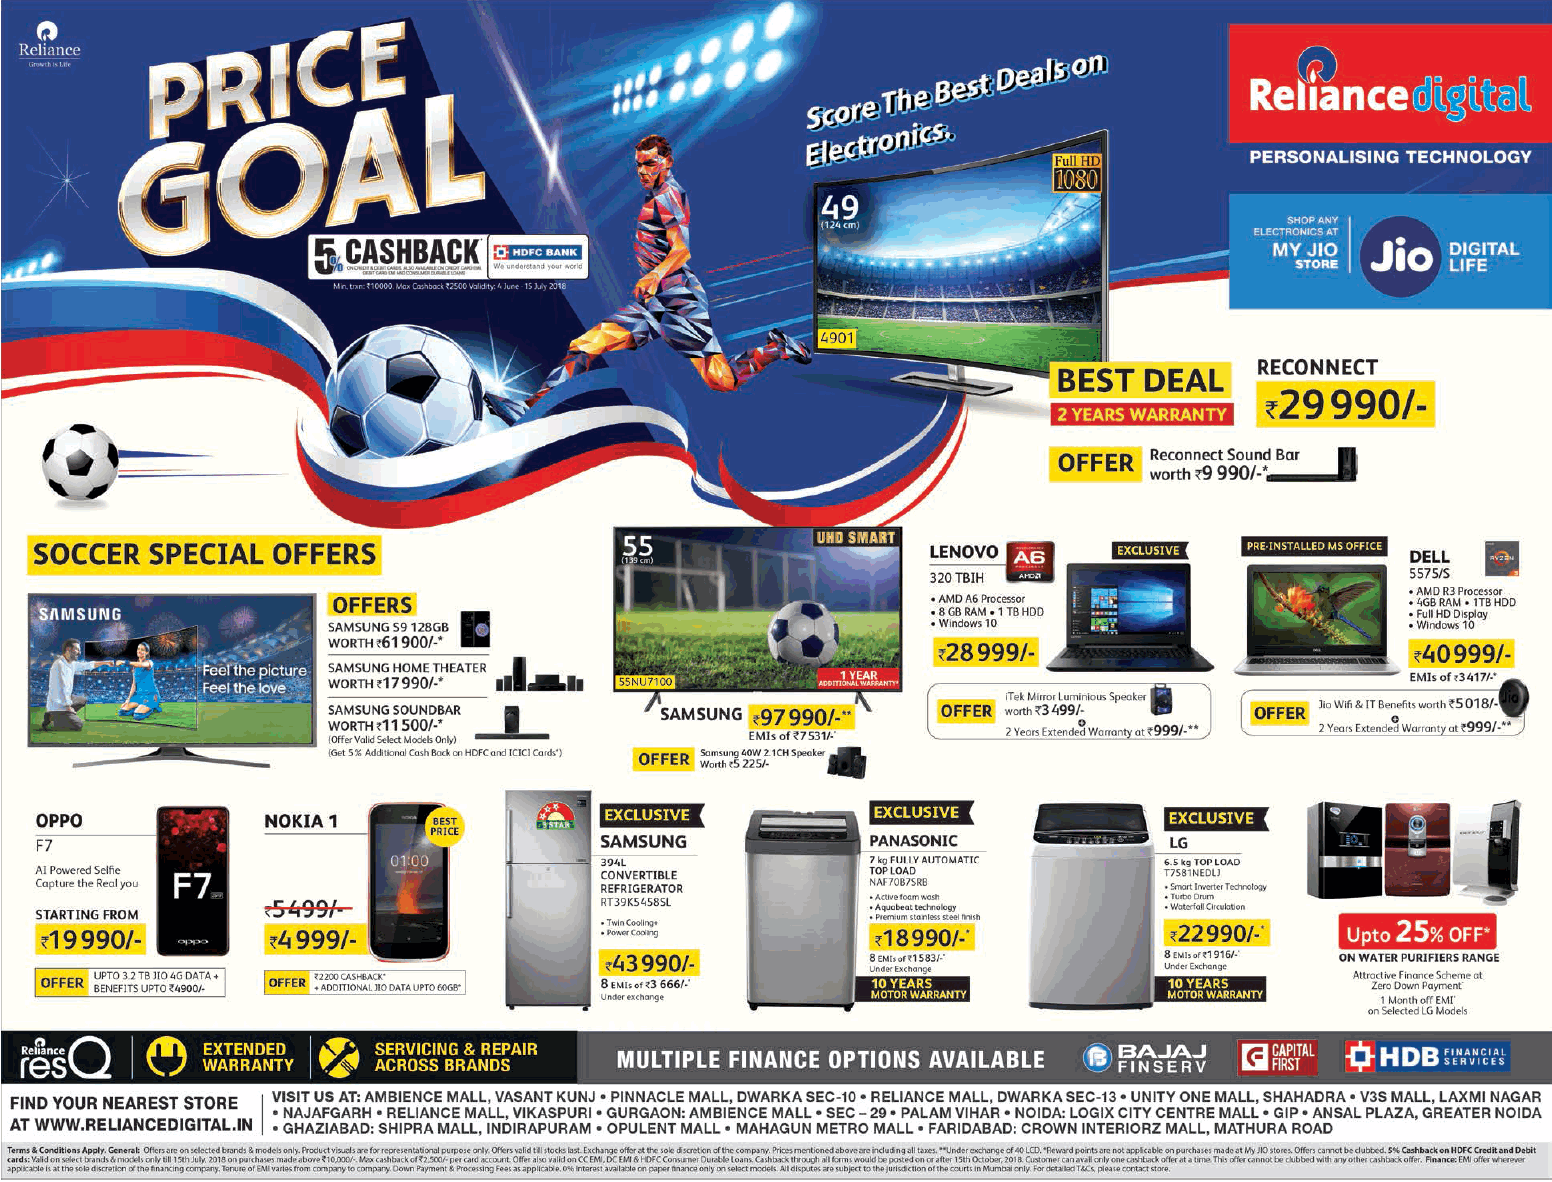 Reliance Digital Price Goal Ad